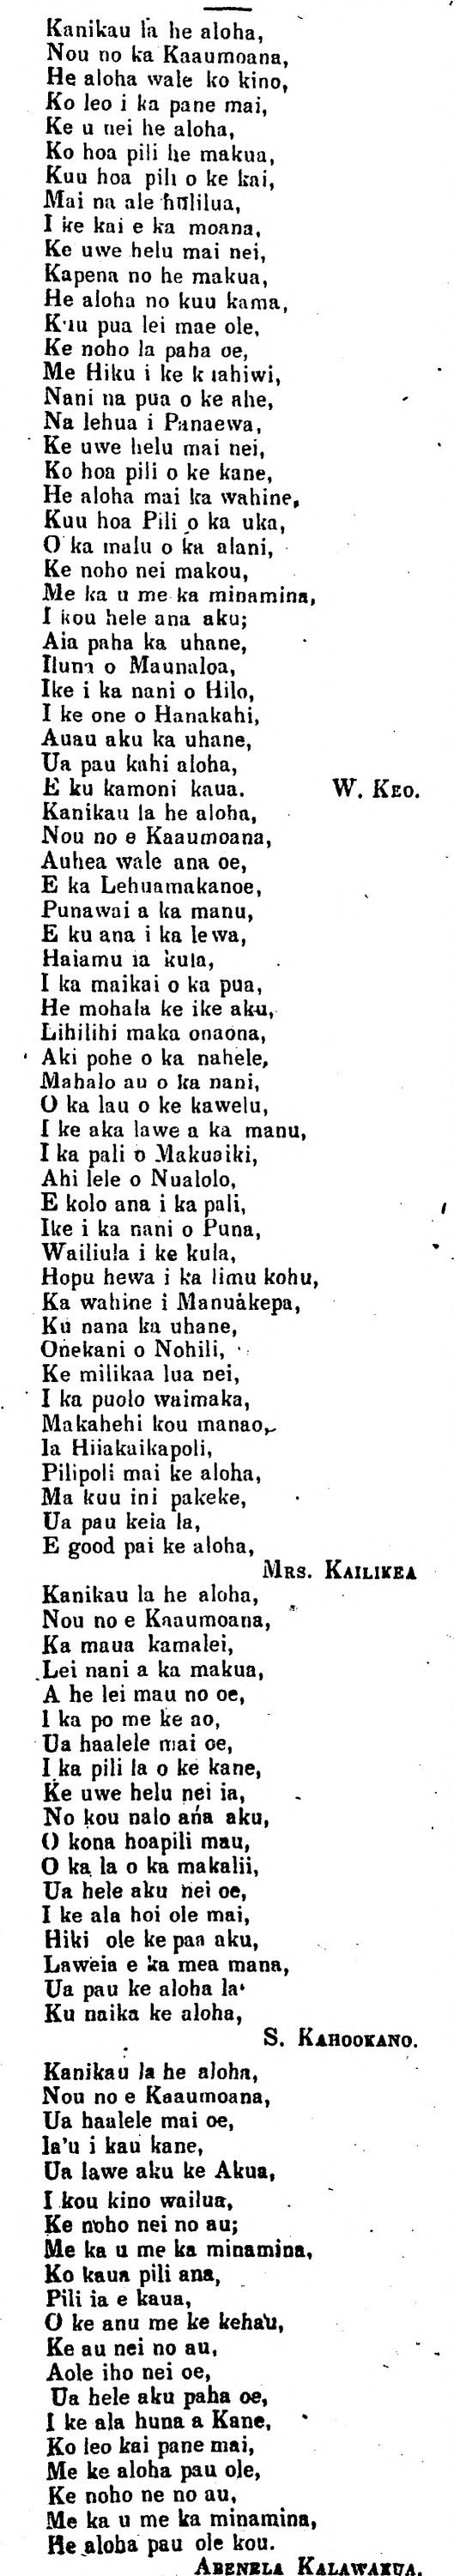 """A kanikau or death lament for Kaaumoana written in different parts by different people.   What sticks out for me is the use of English both in the word """"good"""" and the word """"pai"""" (a transliteration of English """"bye"""")   """"... e good pai ke aloha"""" Mrs. Kailikea  Its sad that she would probably get an F for that at UH Manoa."""